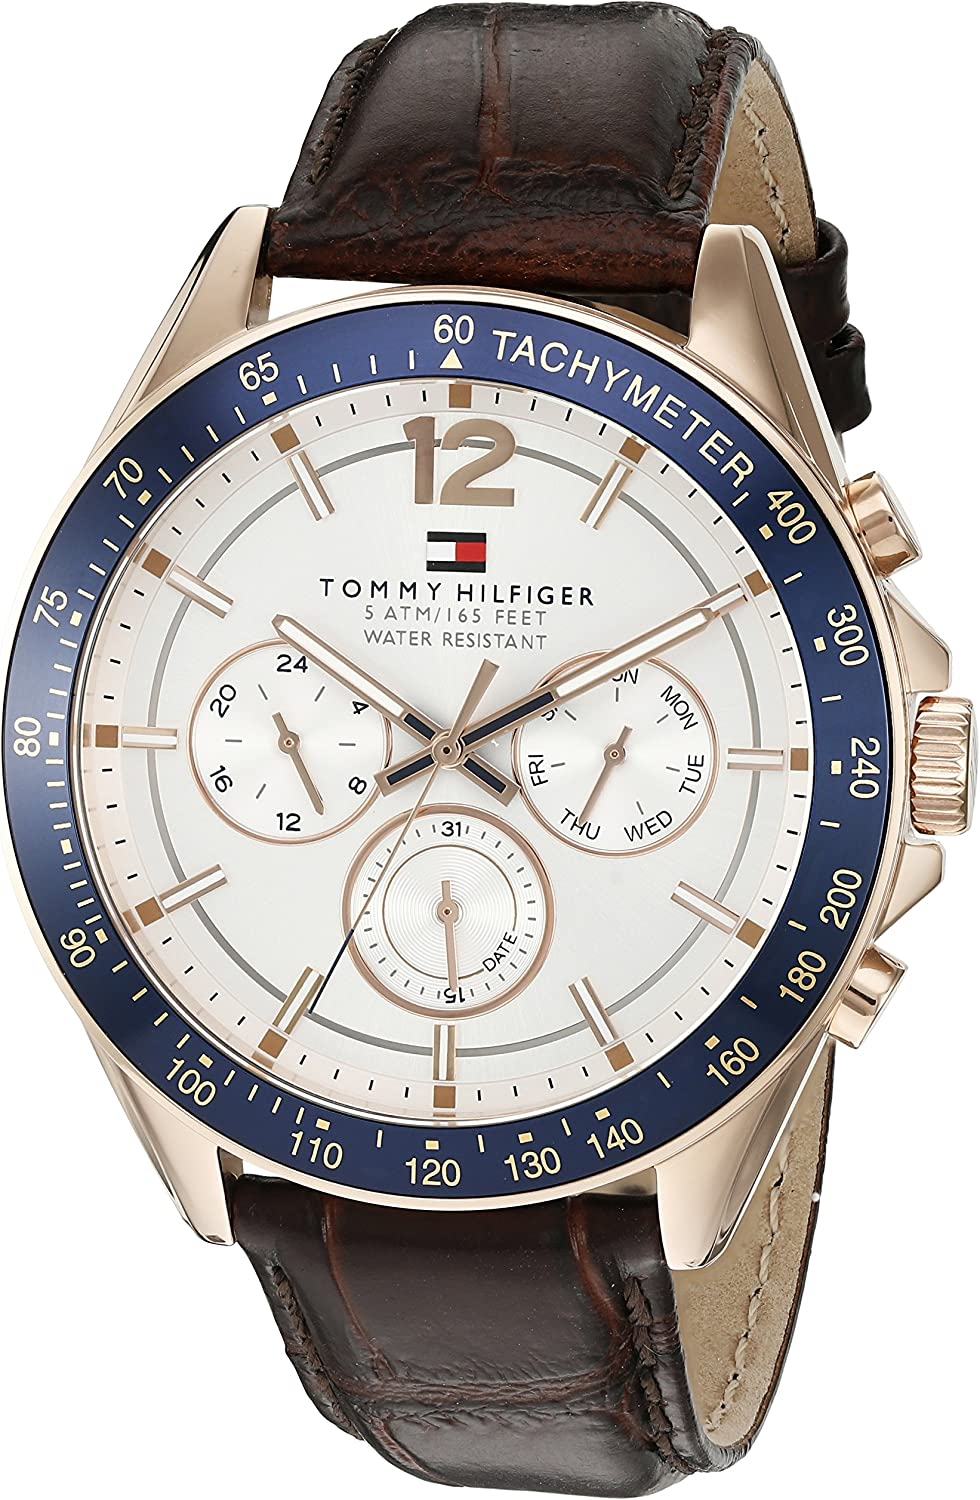 Tommy Hilfiger Men s 1791118 Sophisticated Sport Watch with Brown Leather Band